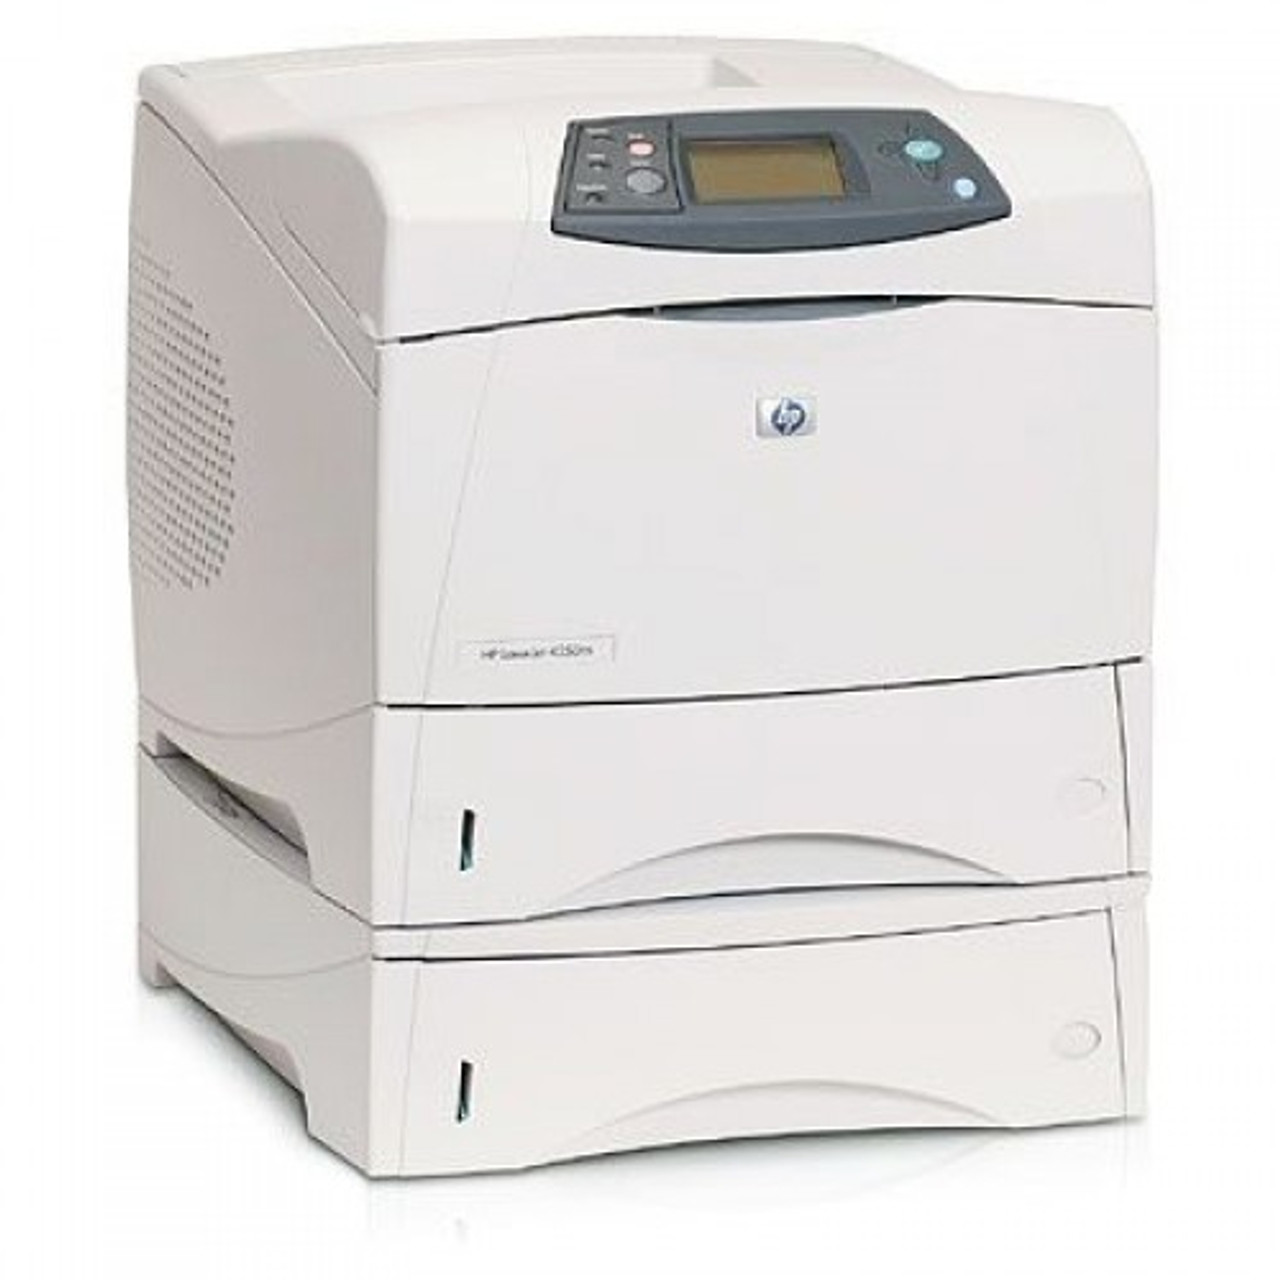 HP LaserJet 4350tn - Q5408AR#ABA - HP Laser Printer for sale